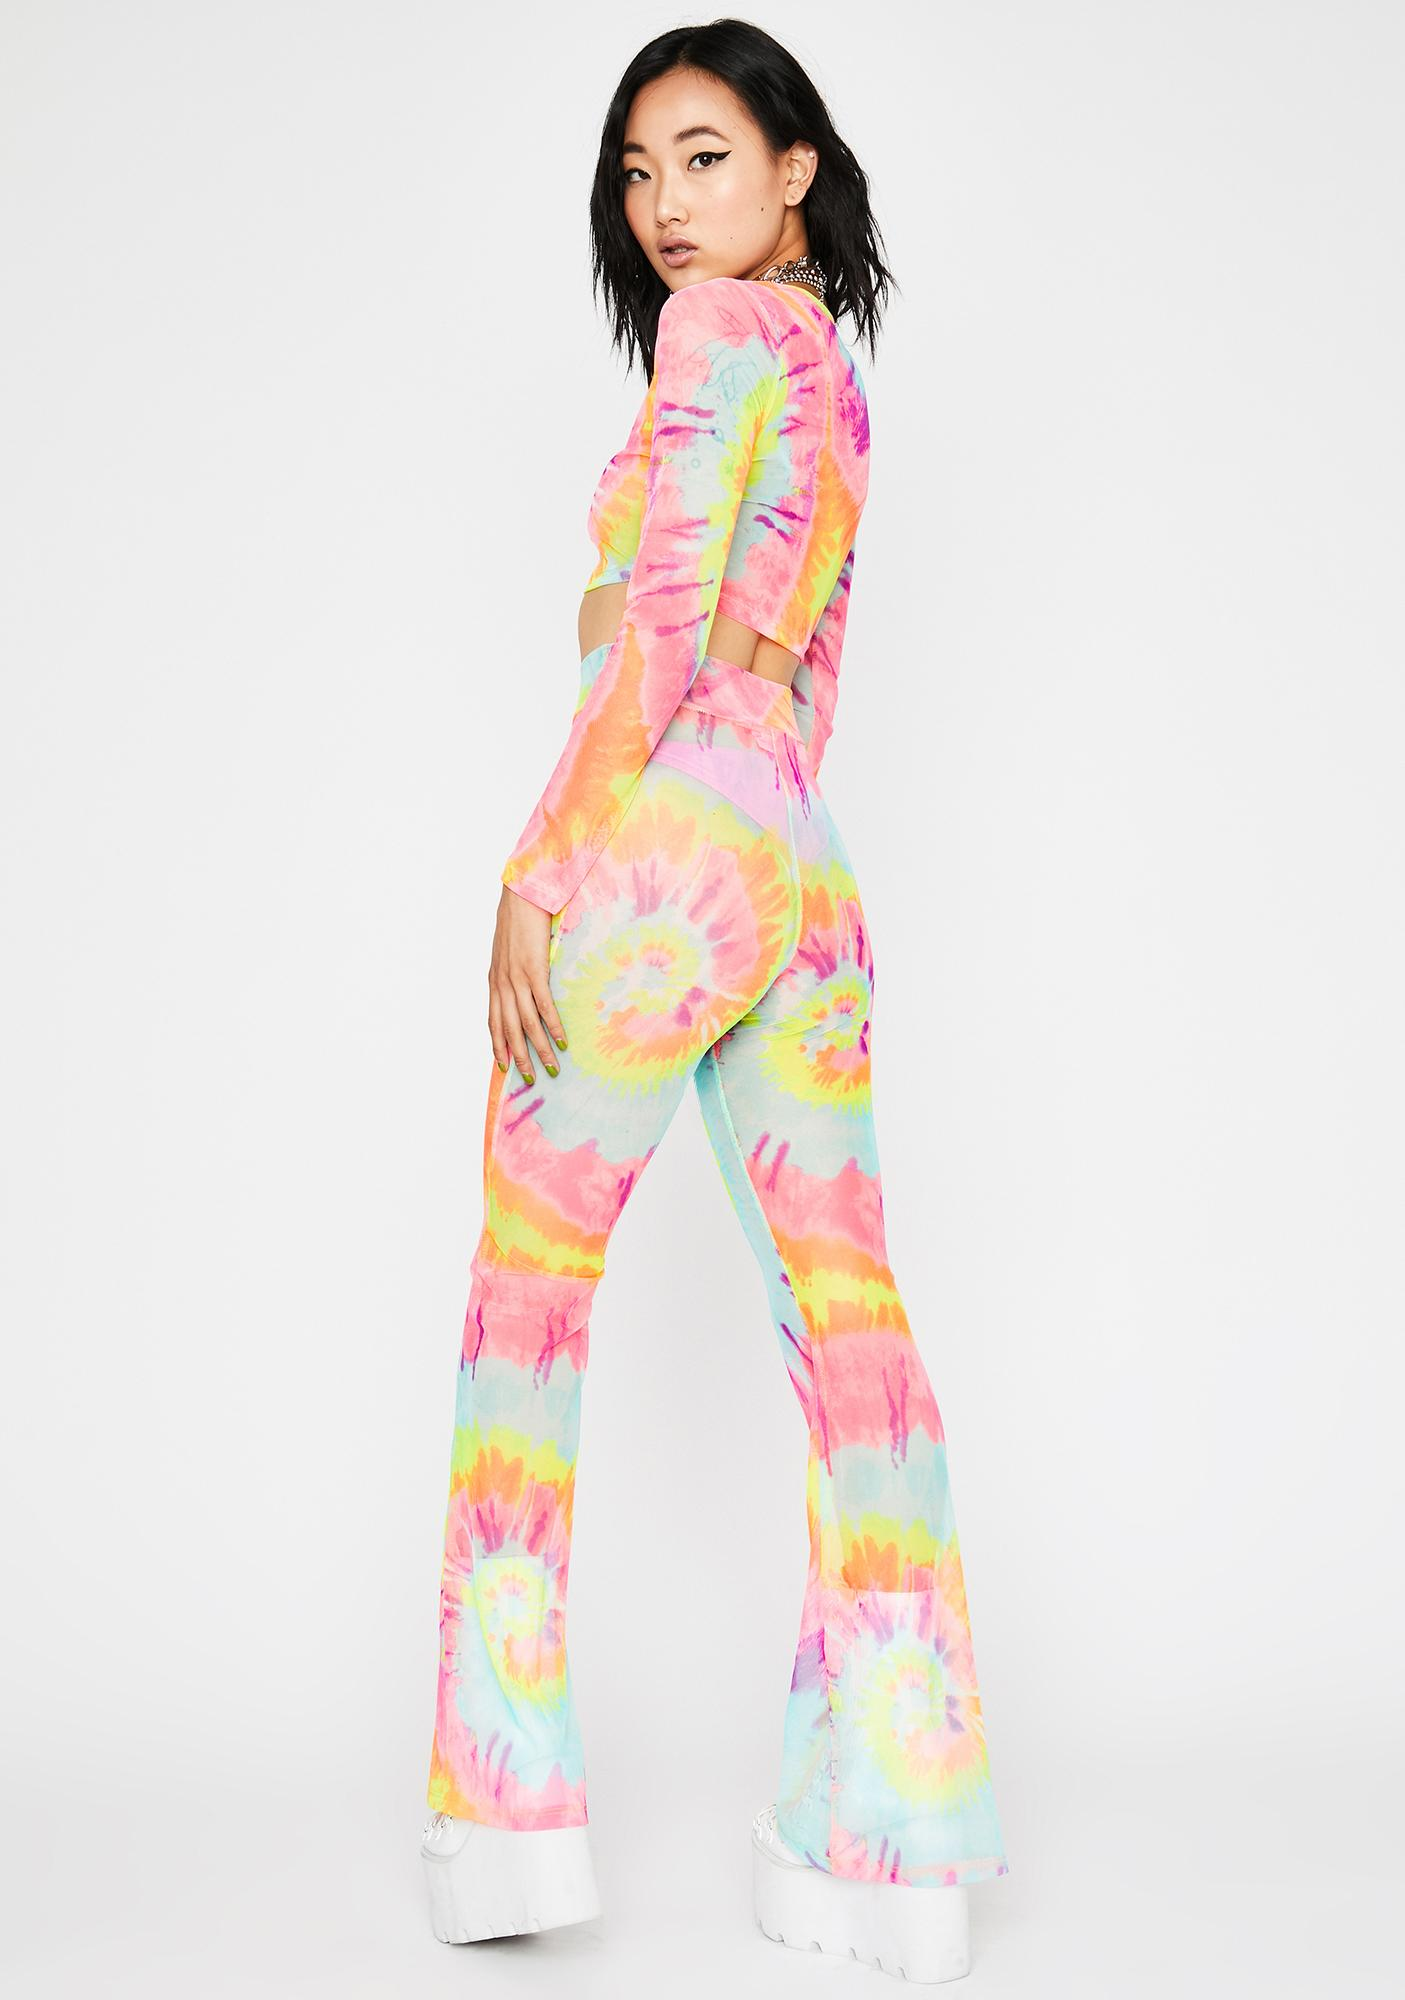 Freaky This Just In Pant Set